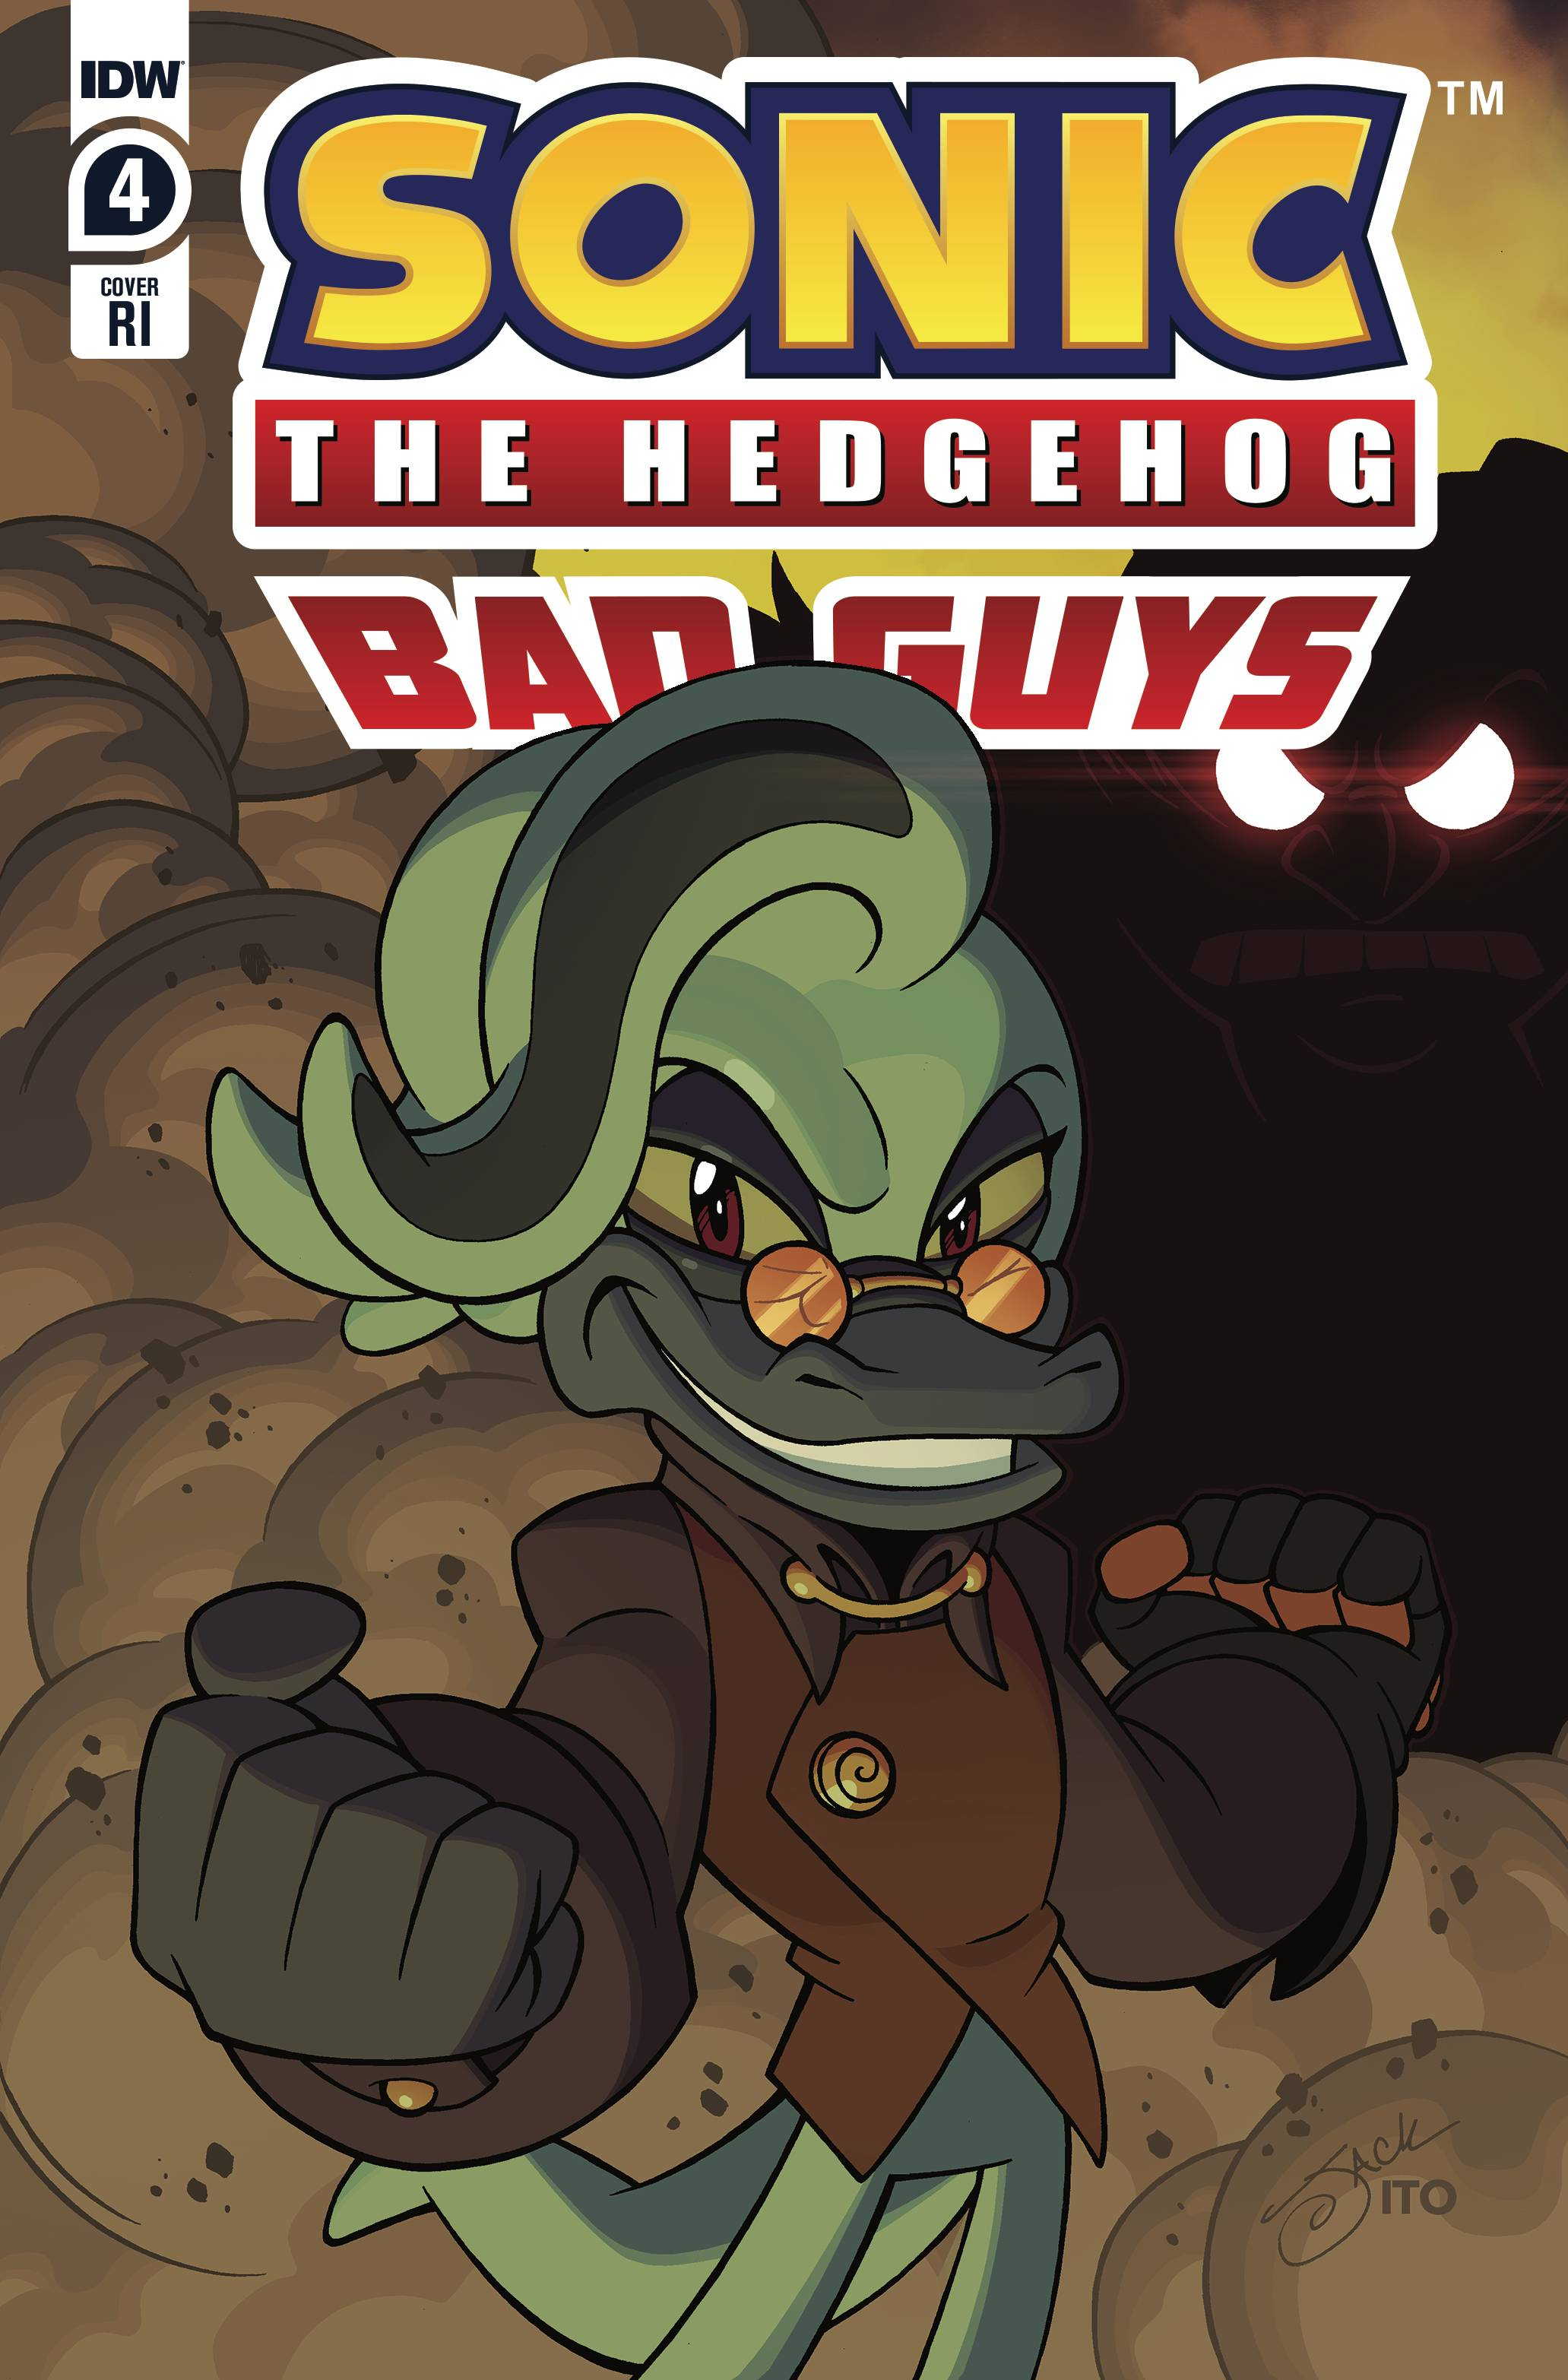 SONIC THE HEDGEHOG BAD GUYS #4 (OF 4) 10 COPY INCV LAWRENCE